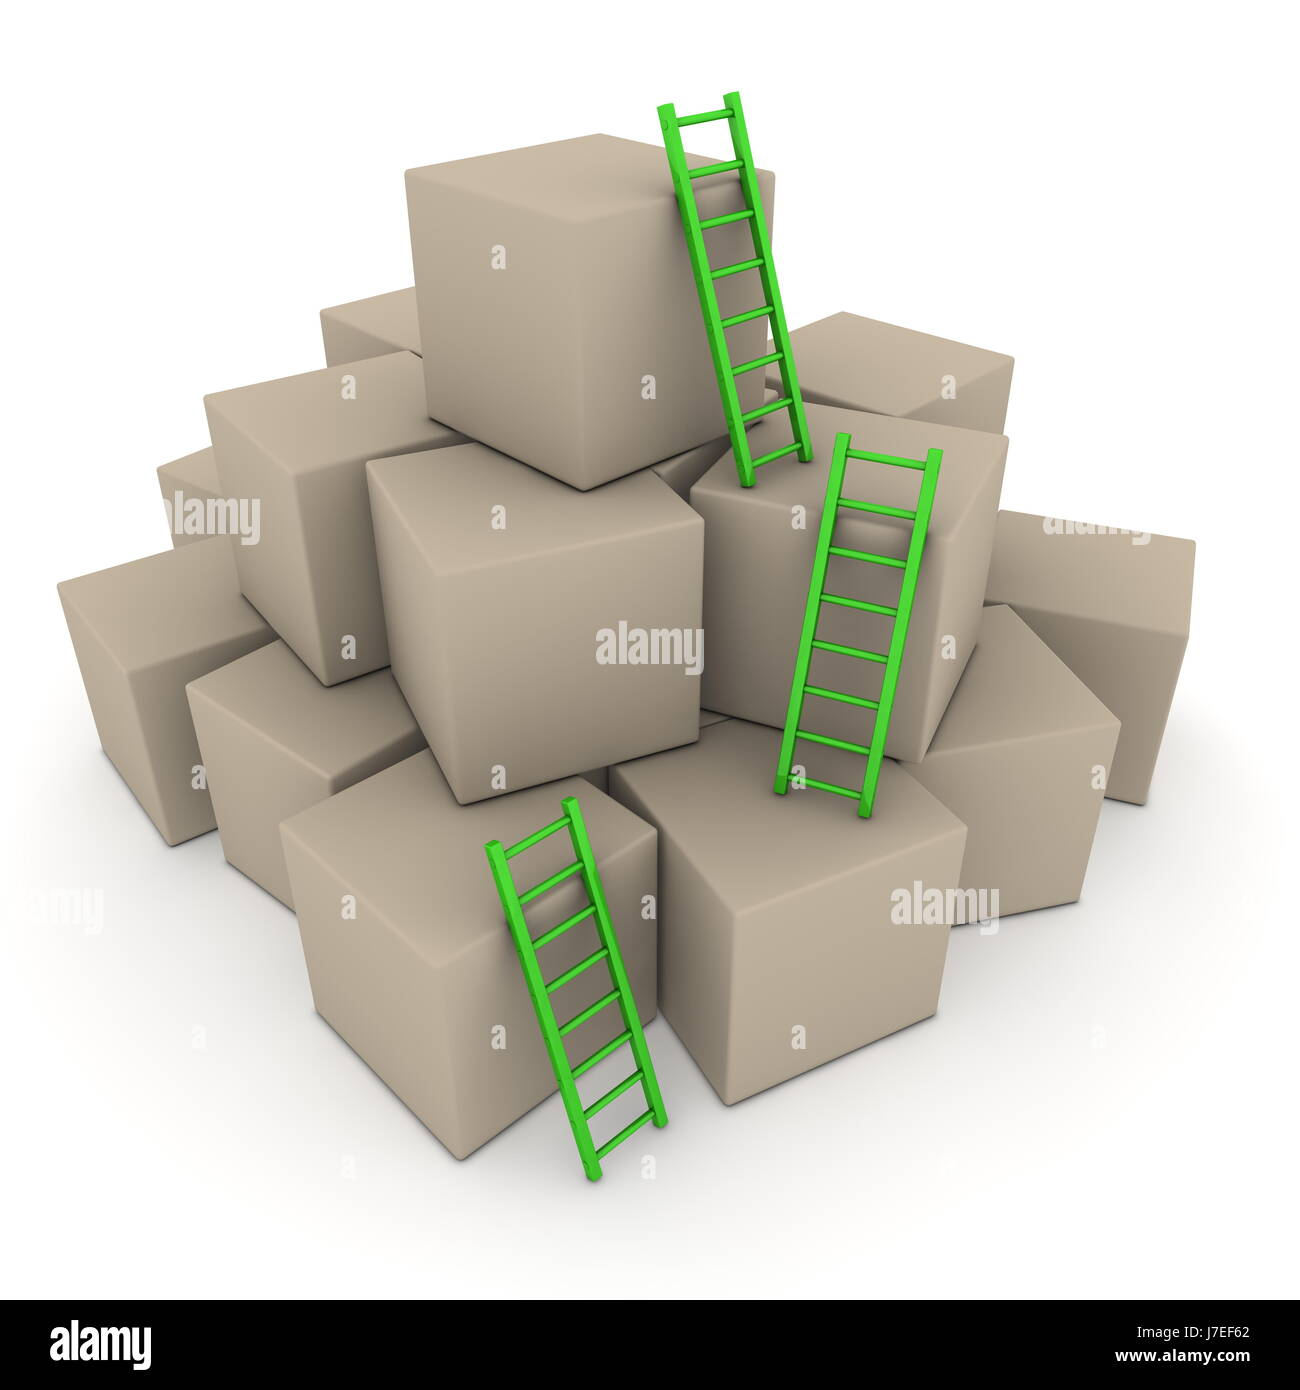 stack box boxes ladder heap pile cubes cardboard carton green stock stairs - Stock Image